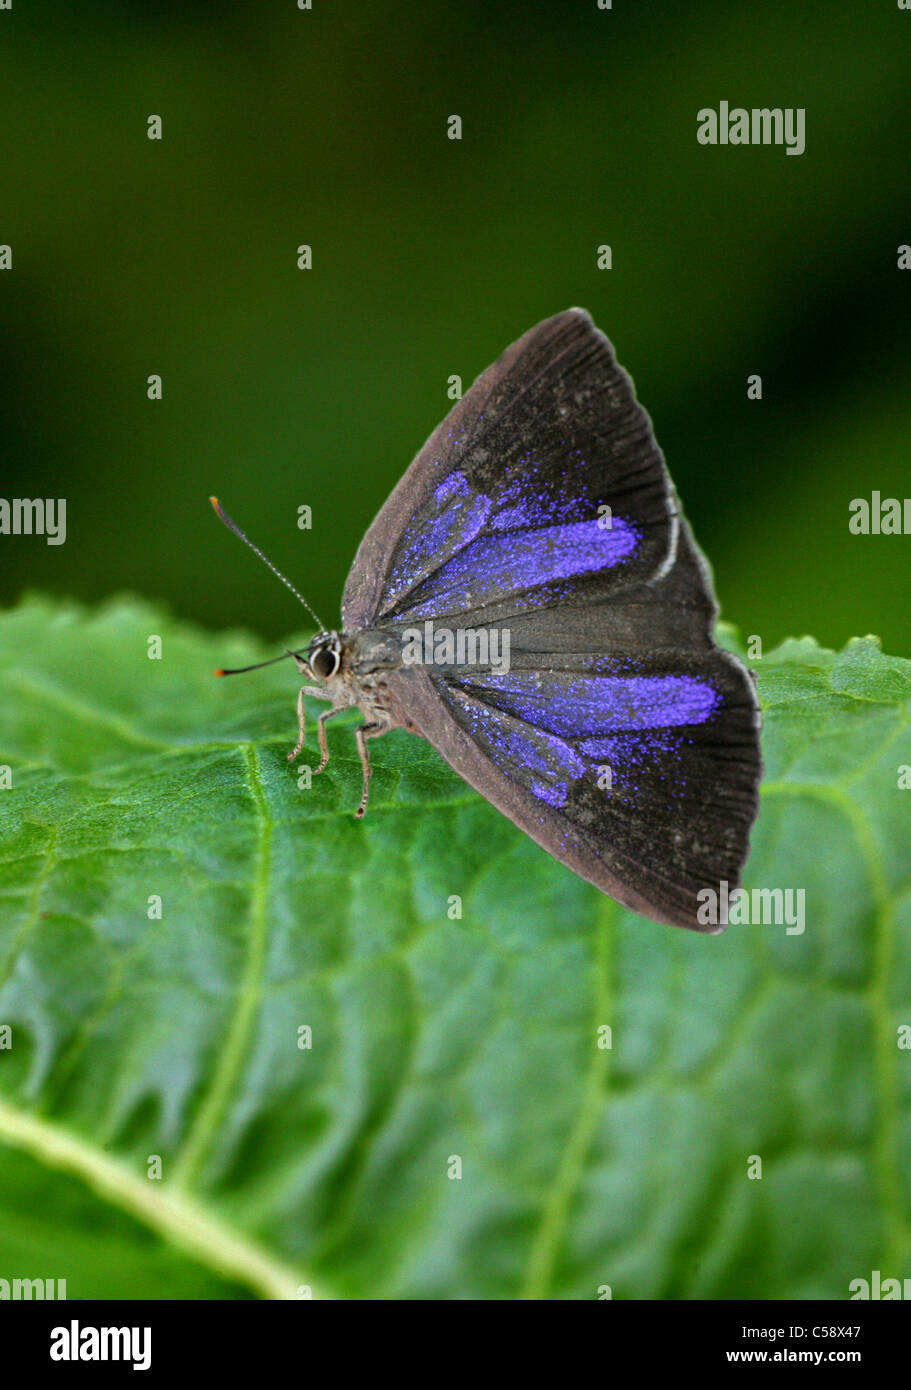 Purple Hairstreak Butterfly, Quercusia quercus, Lycaenidae. Female. - Stock Image